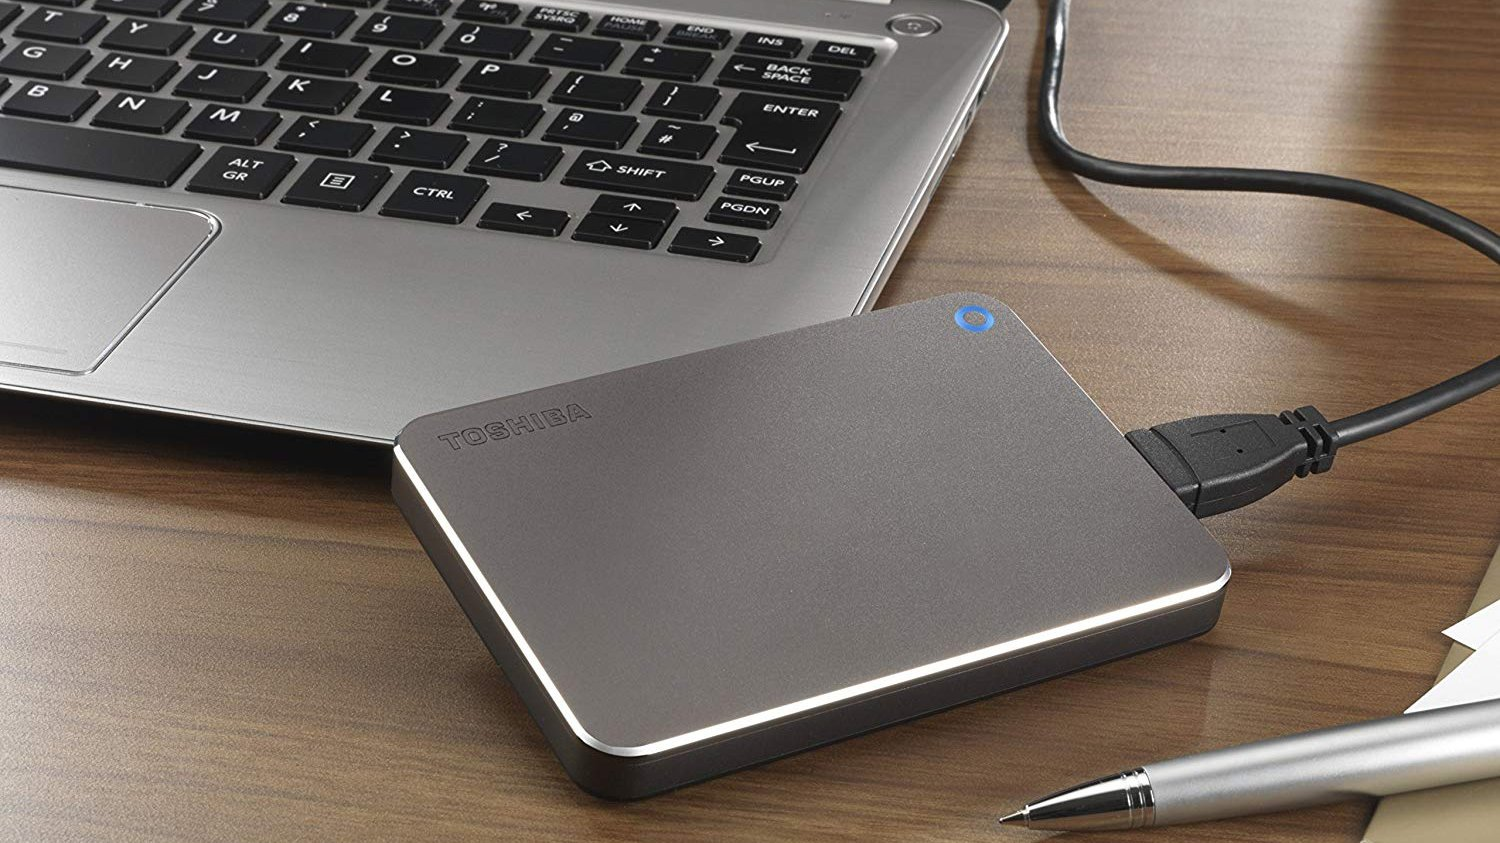 Toshiba Canvio Premium 4TB review: An underwhelming addition to the